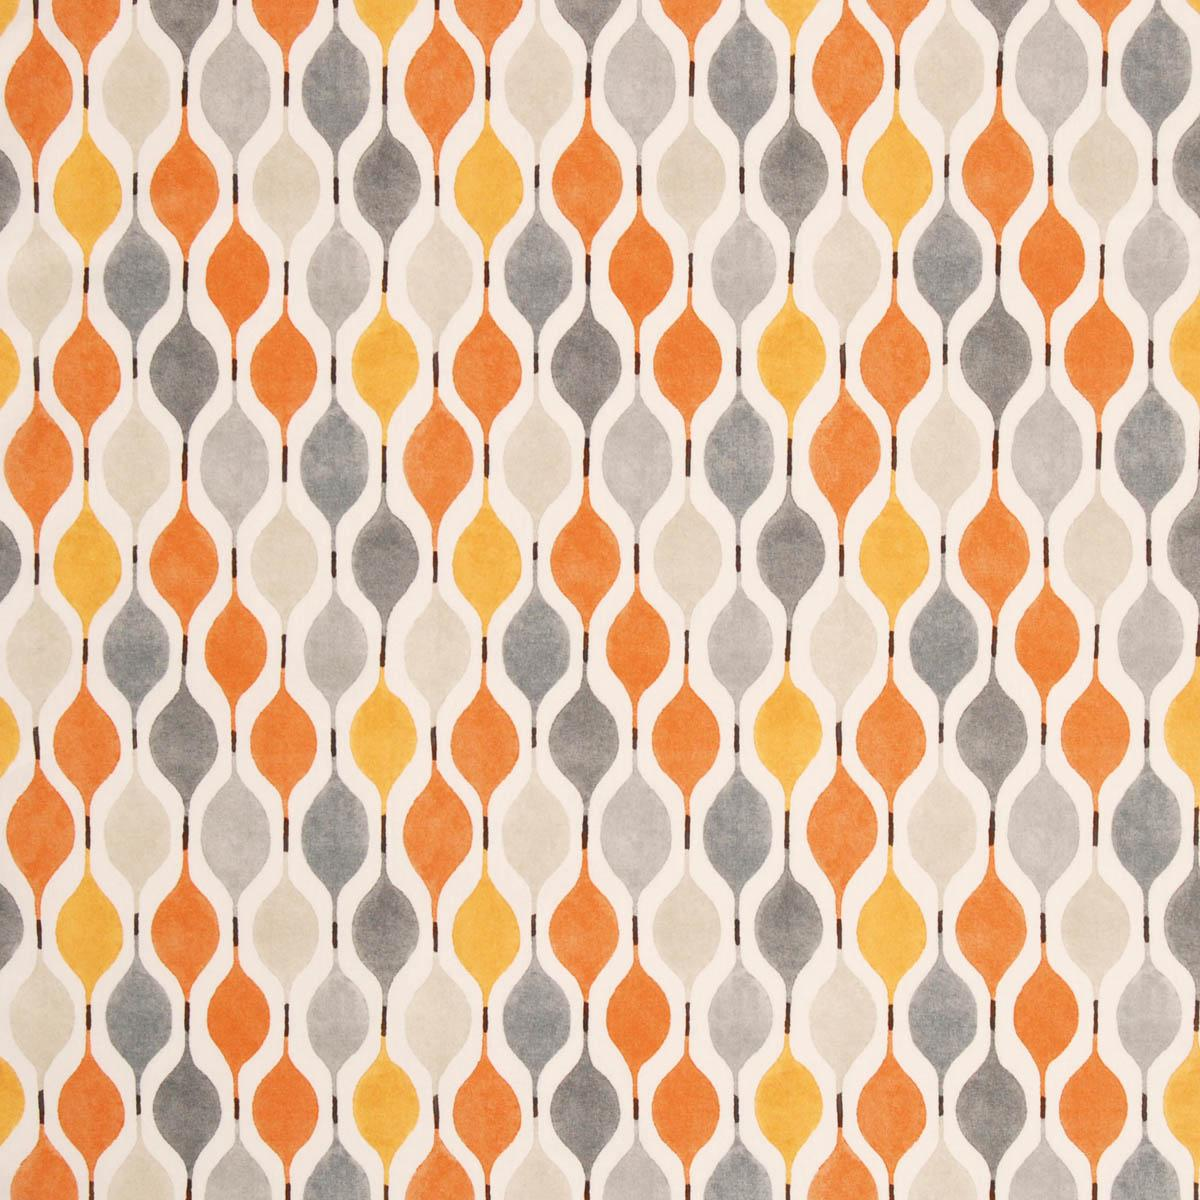 Verve Curtain Fabric Juice : Cheap Printed Curtain Fabrics : UK Delivery